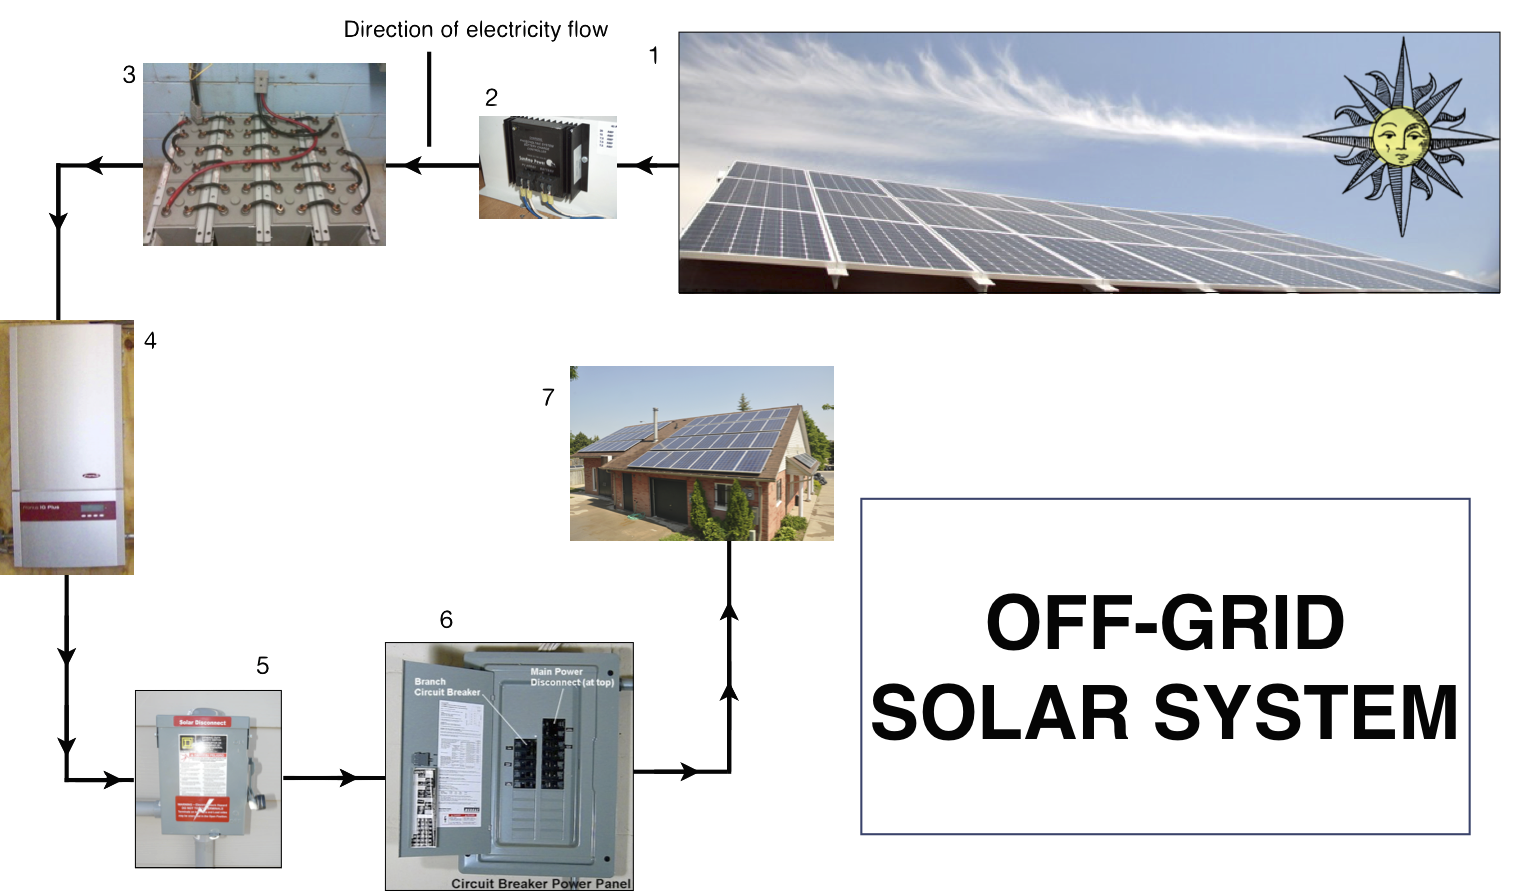 Off Grid Solar Array Wiring Diagram | Wiring Liry Off Grid Solar System Wiring Diagram on